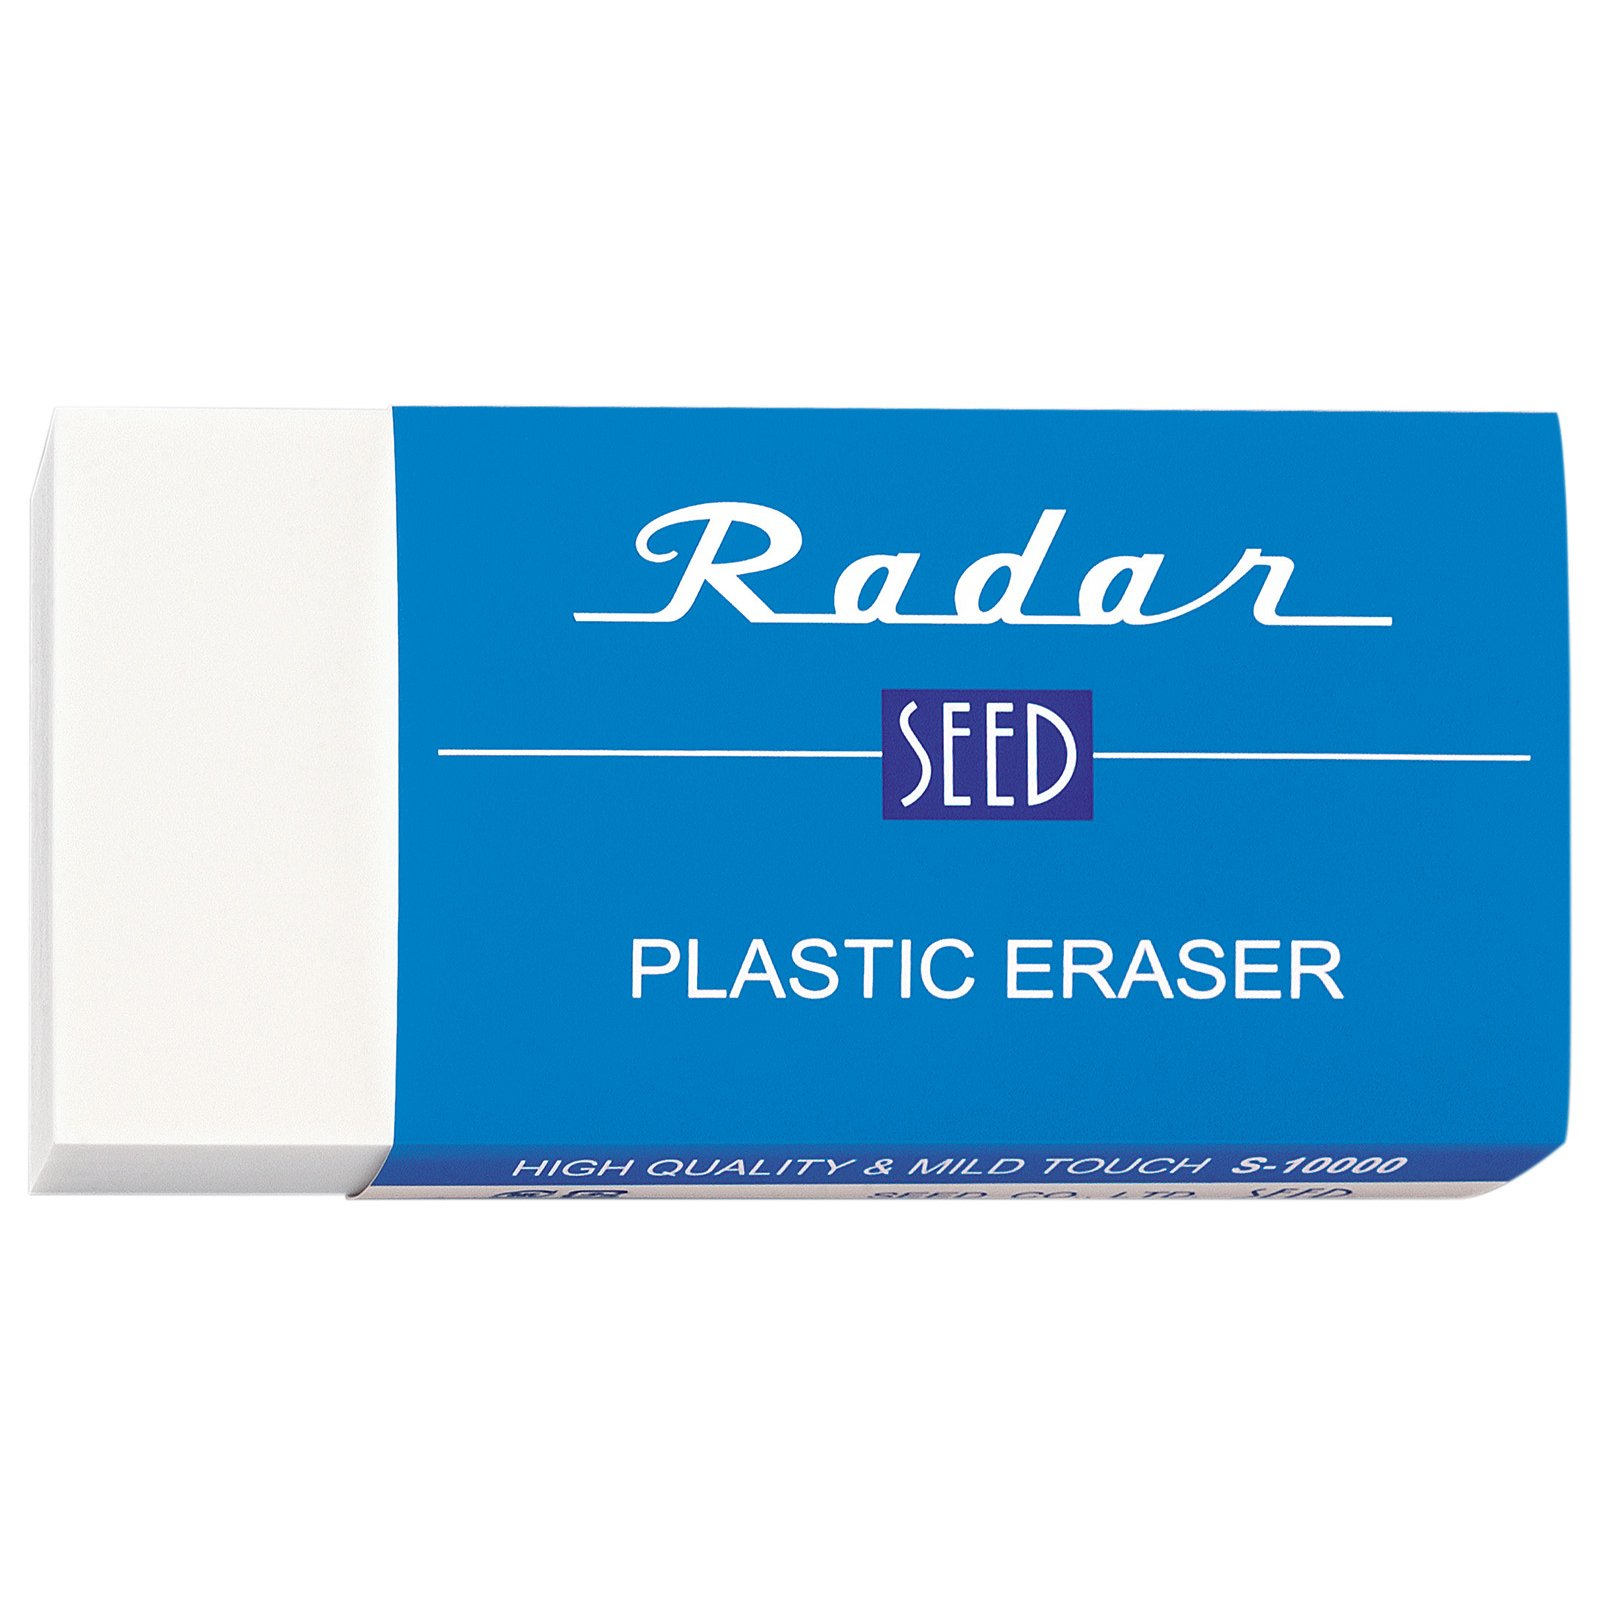 Super Big Size Eraser ''Radar S-10000''